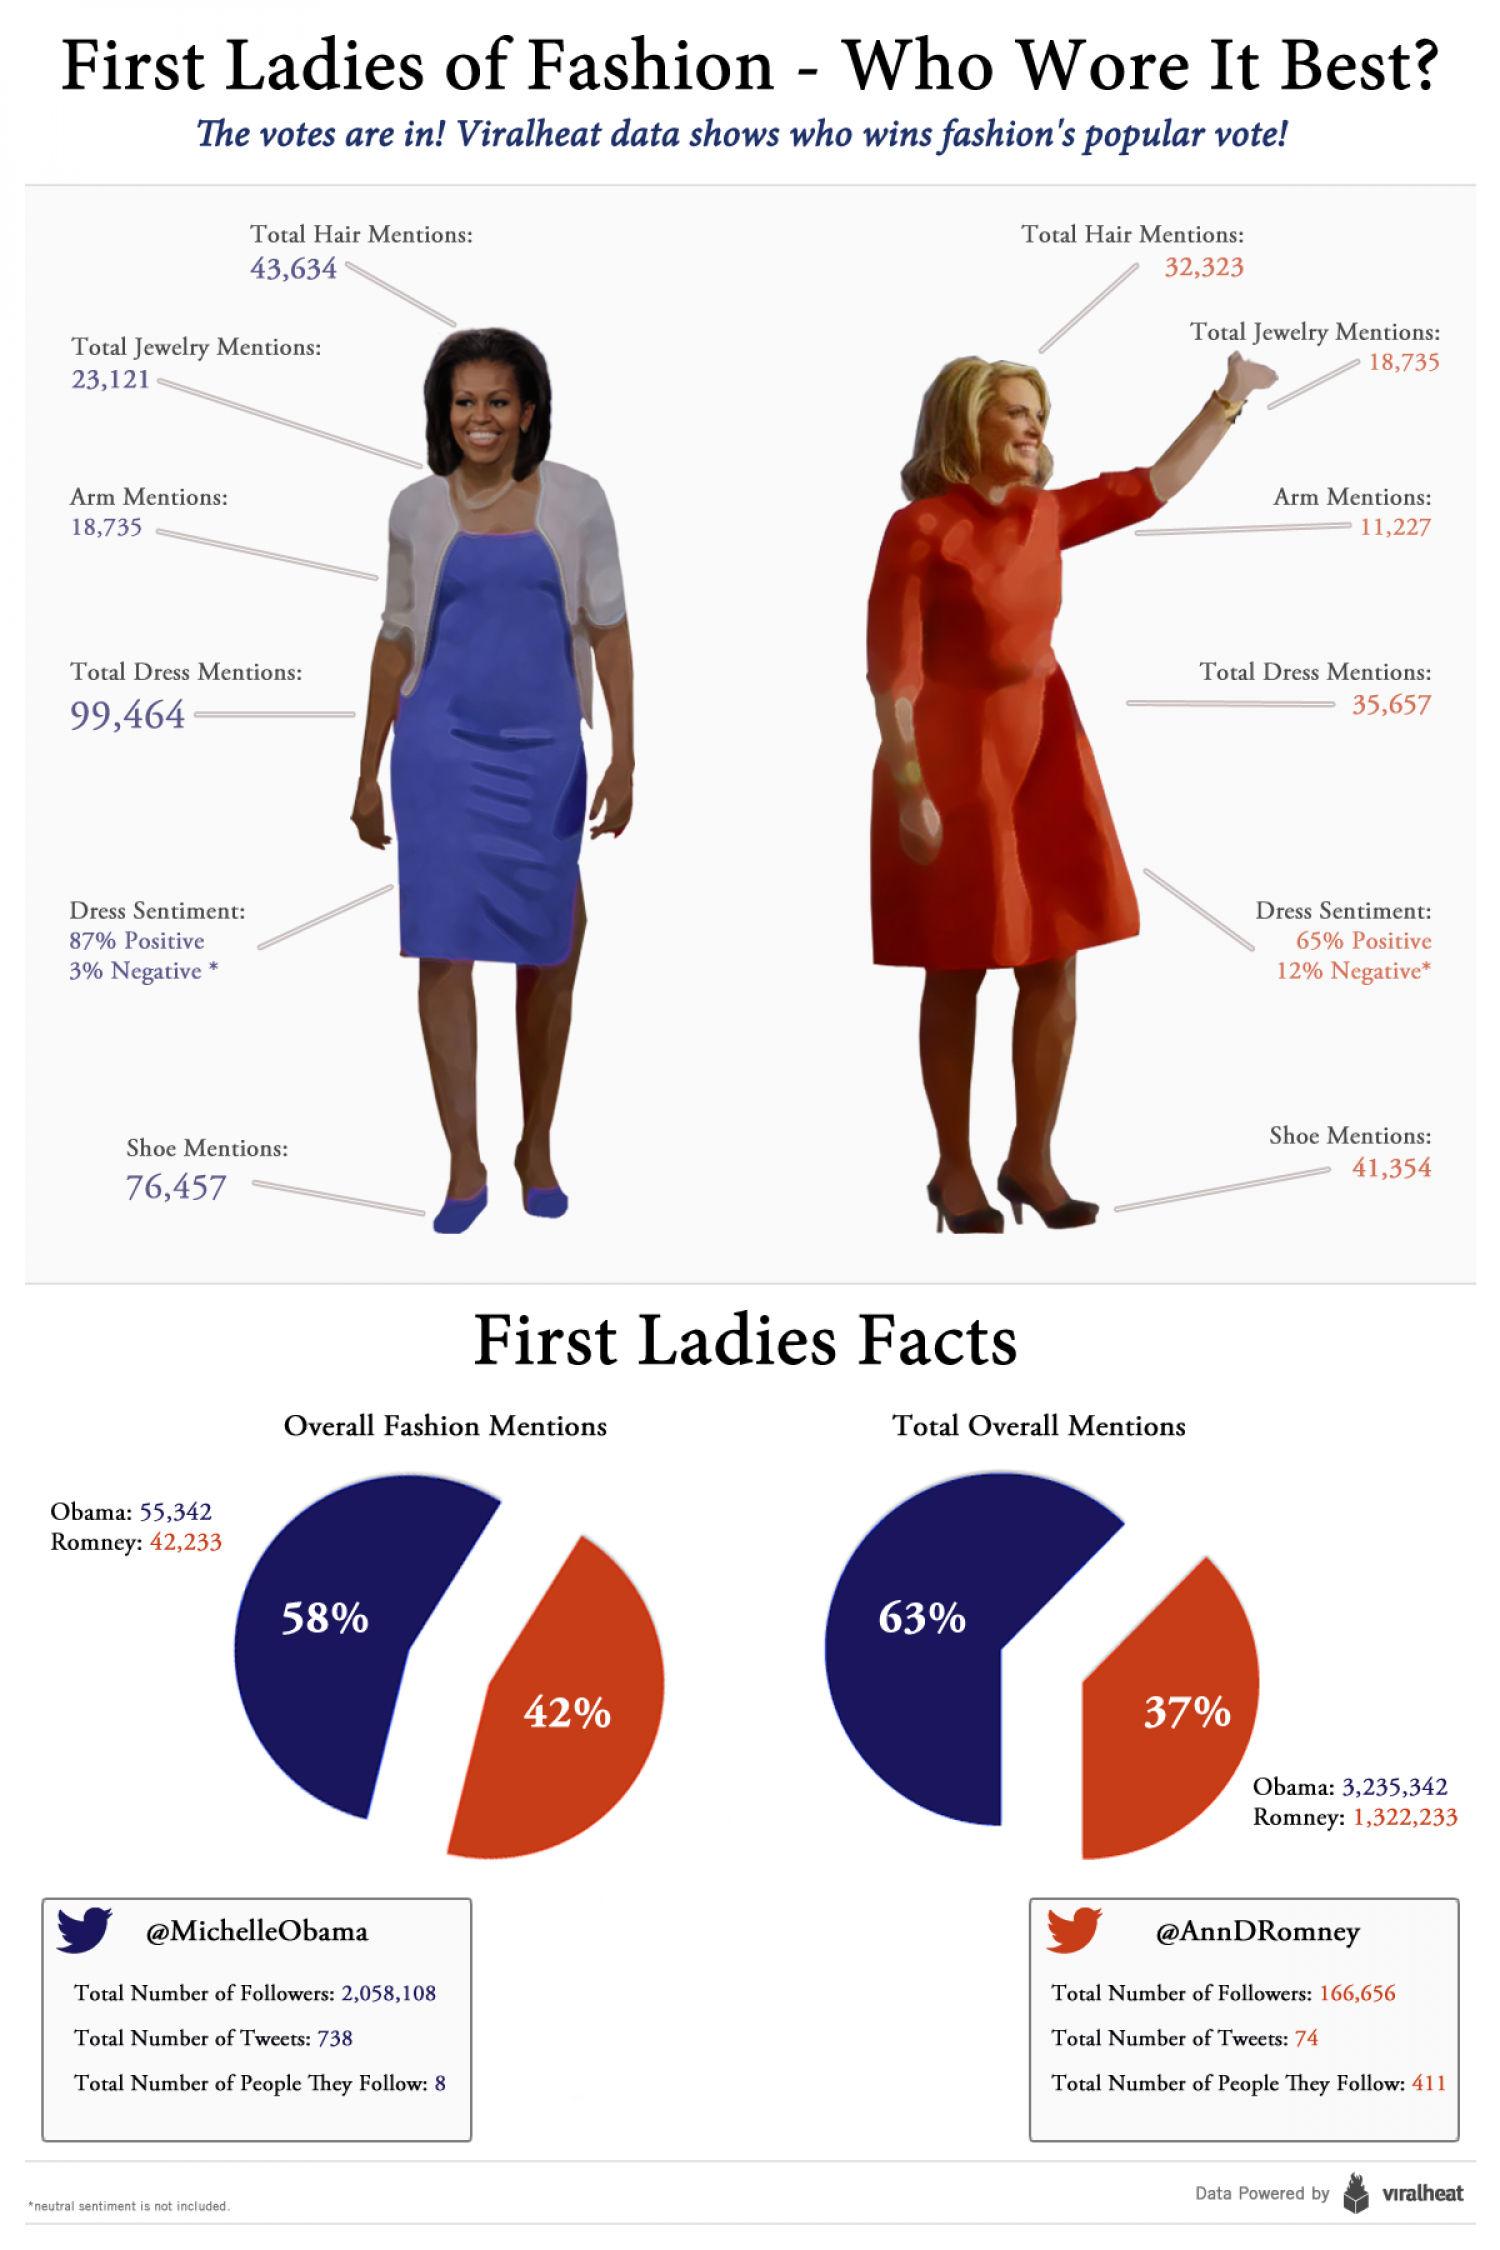 First Ladies of Fashion Infographic